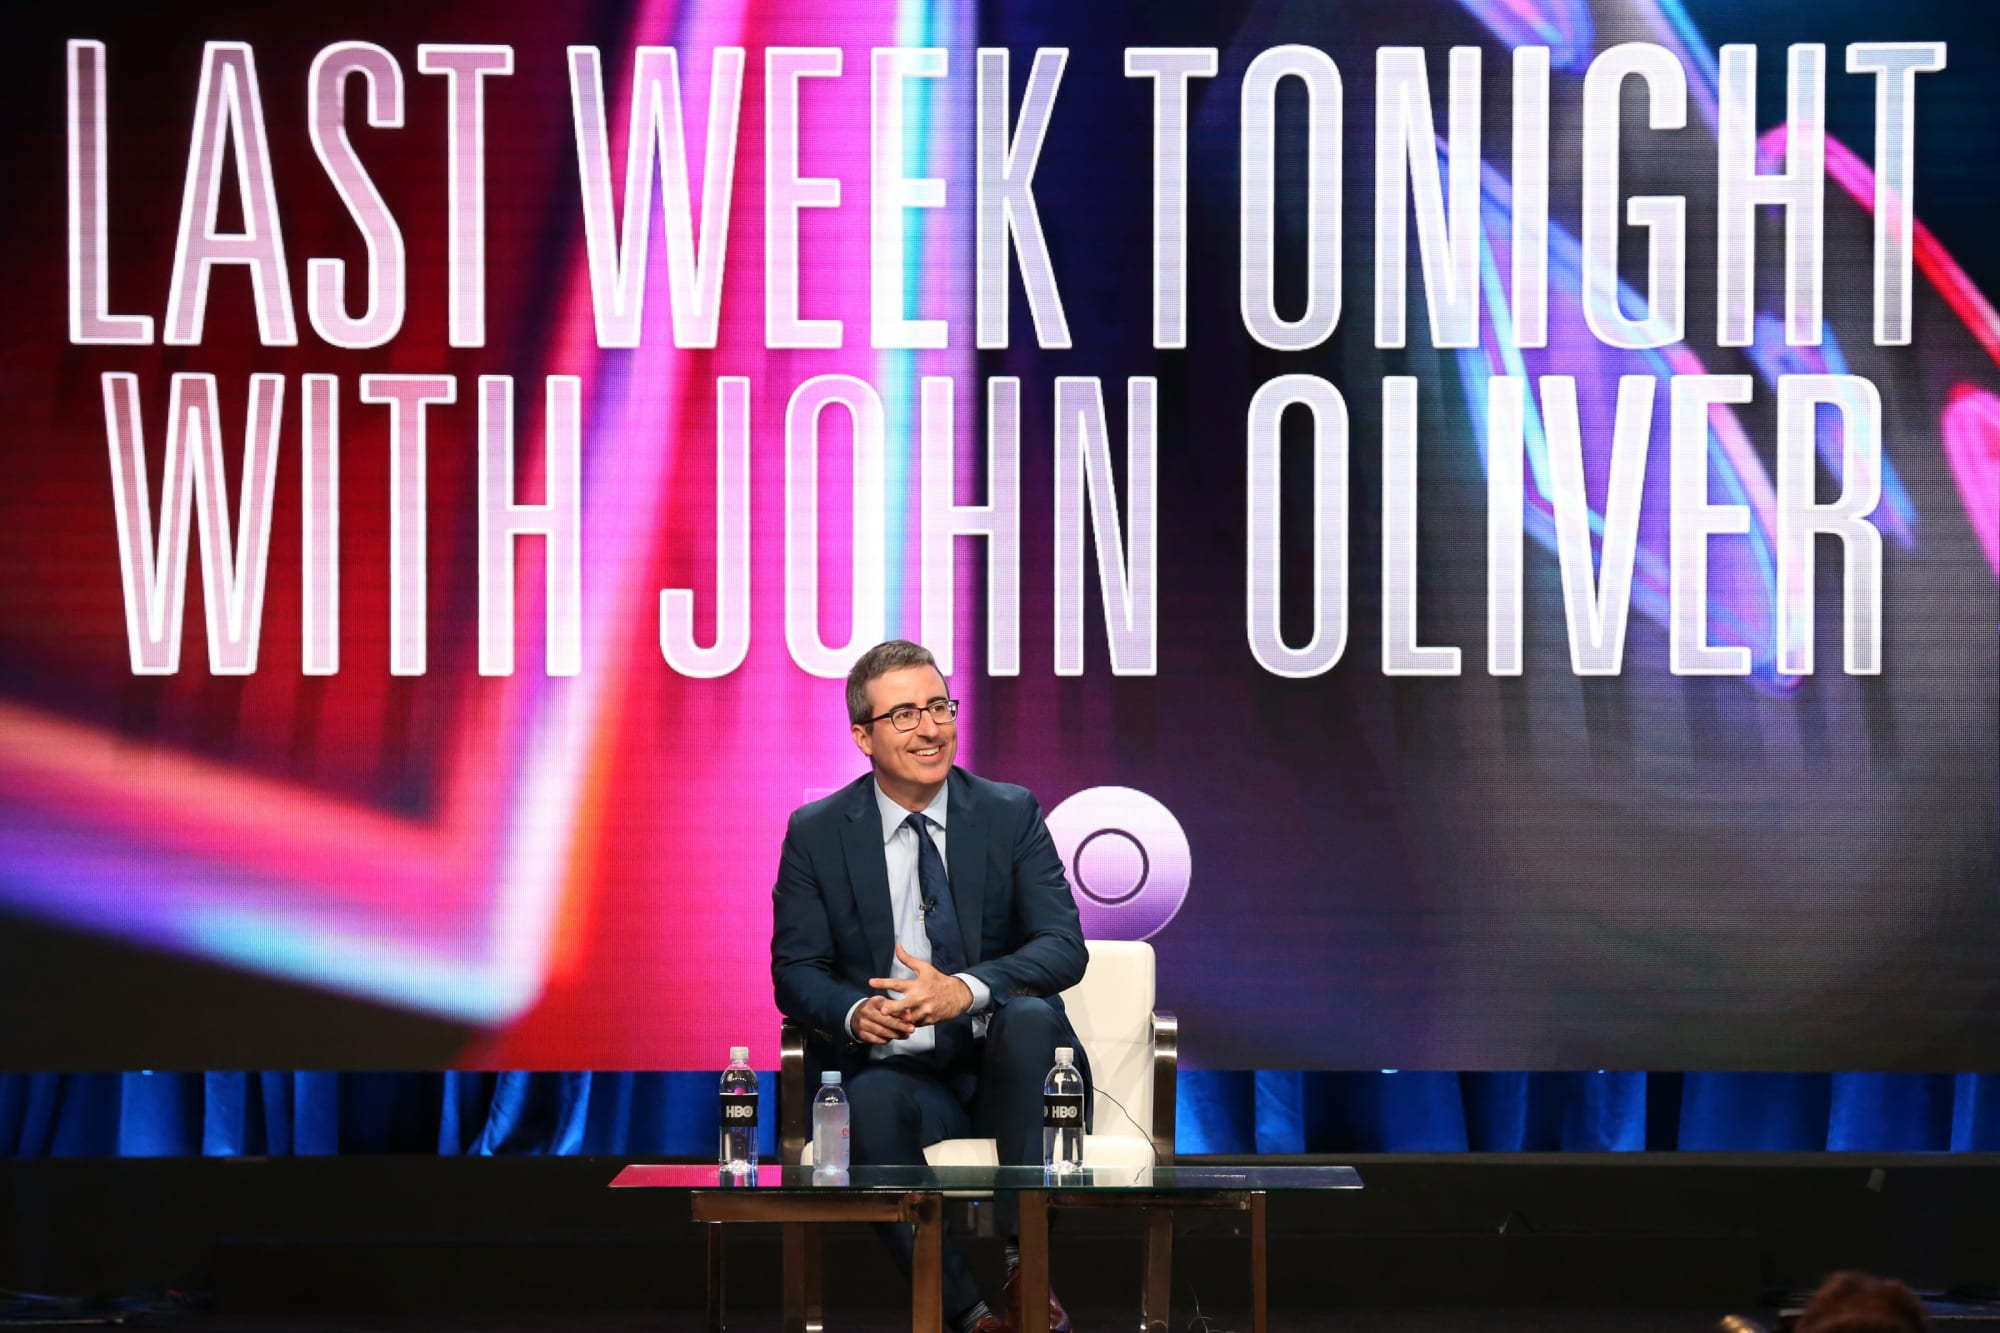 Is Last Week Tonight with John Oliver new for August 9?